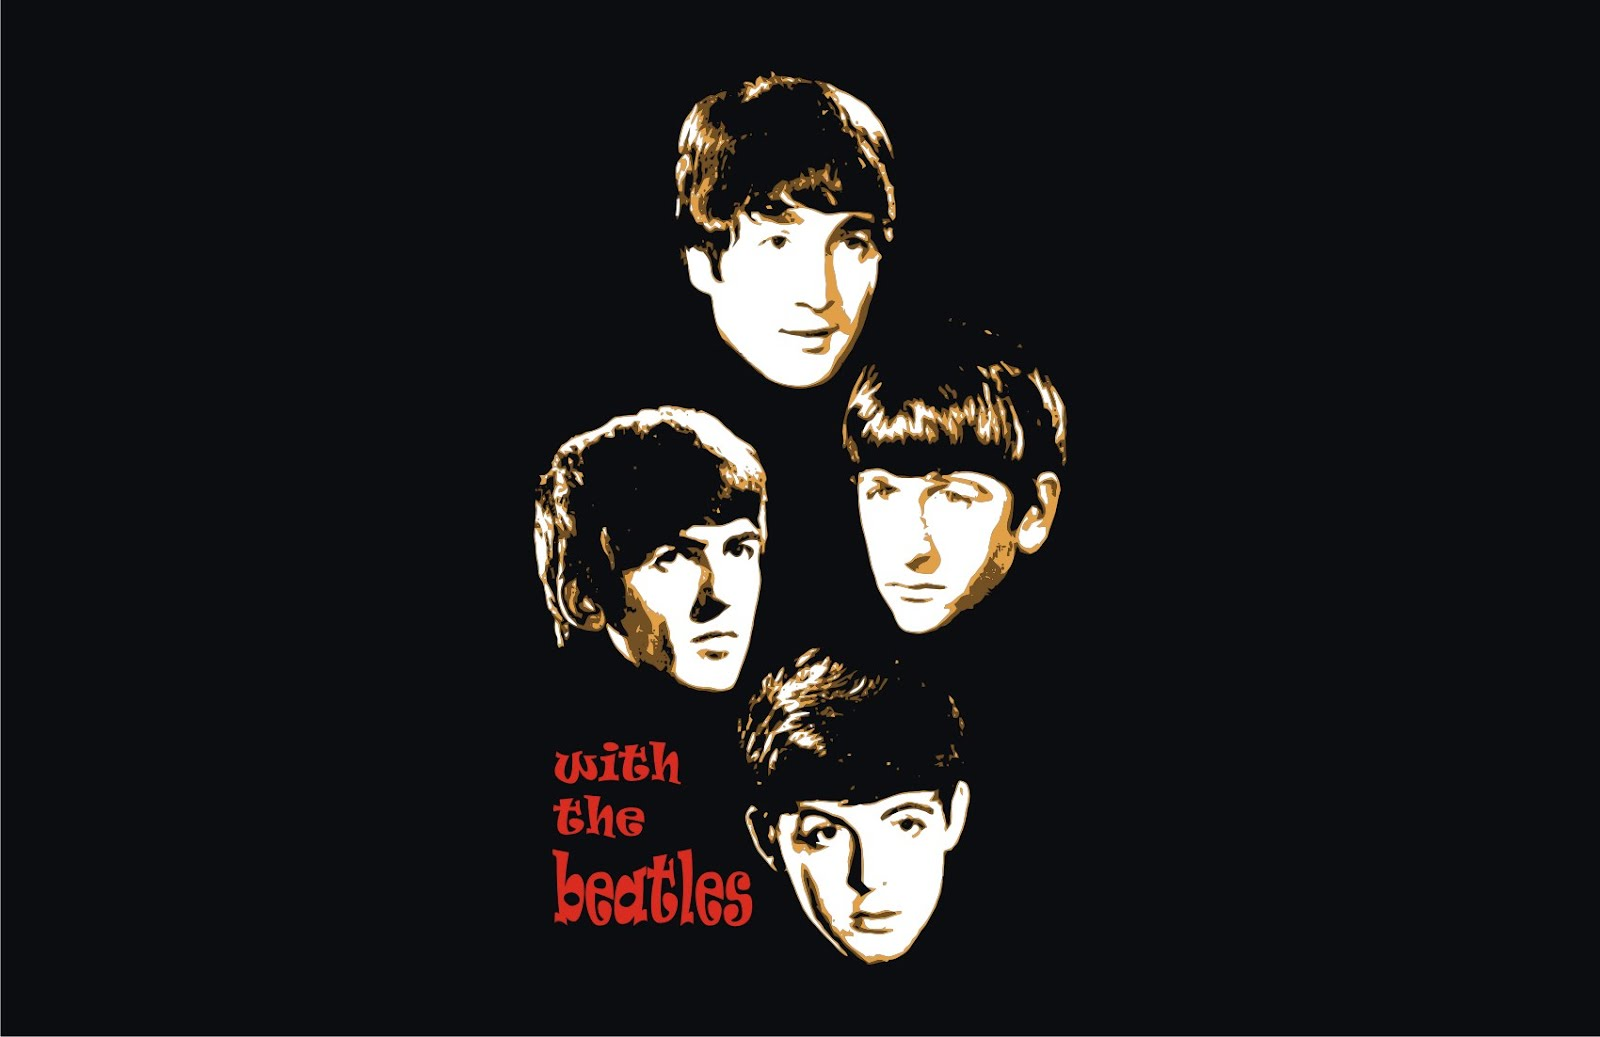 the_beatles-with_the_beatles_front_vector